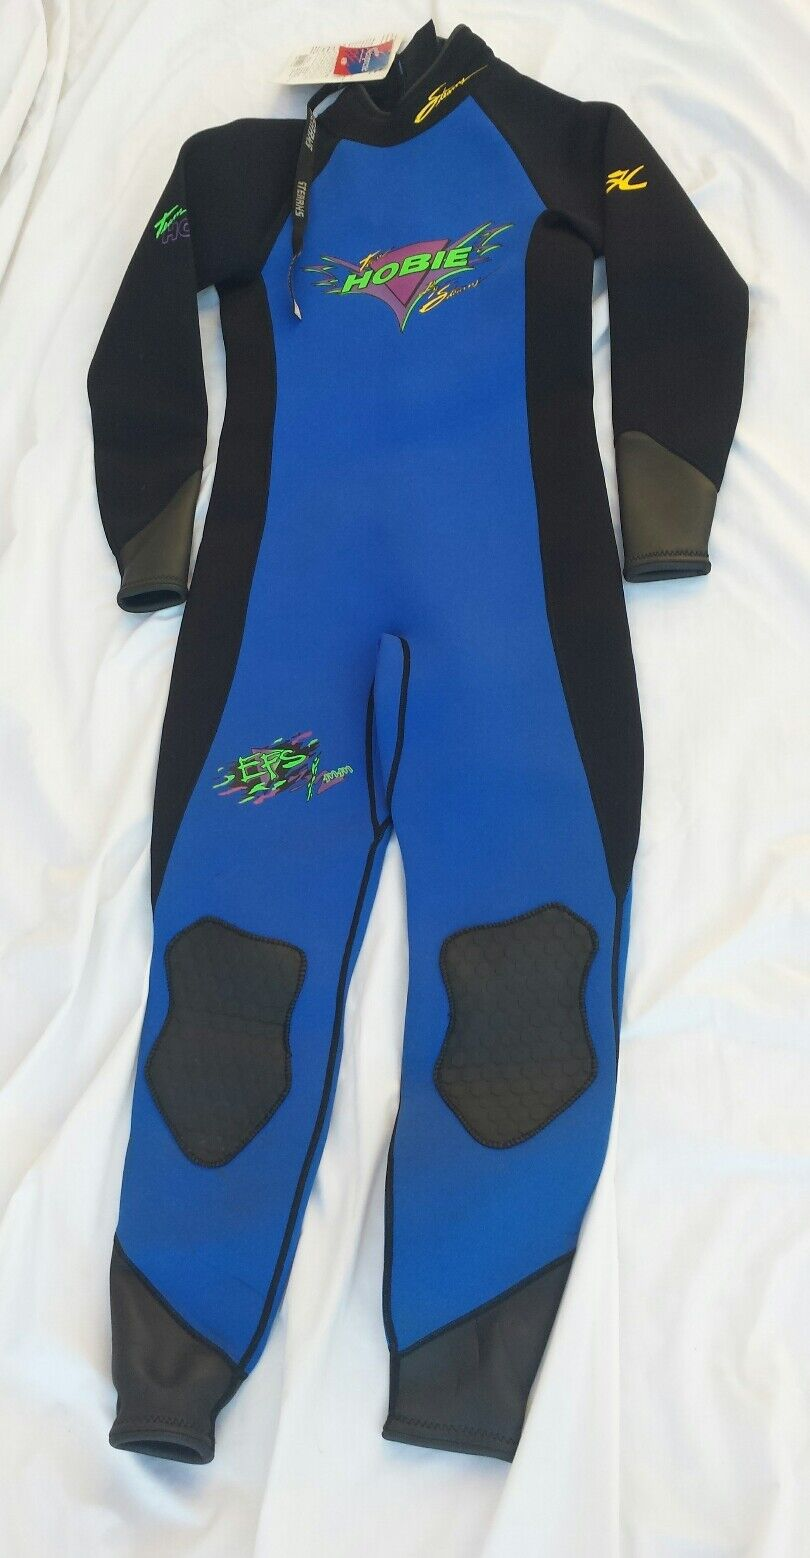 NEW -  Hobie by Stearns Full Long Wetsuit Ski Board Wet Suit Size Small   S NWT  cheap online